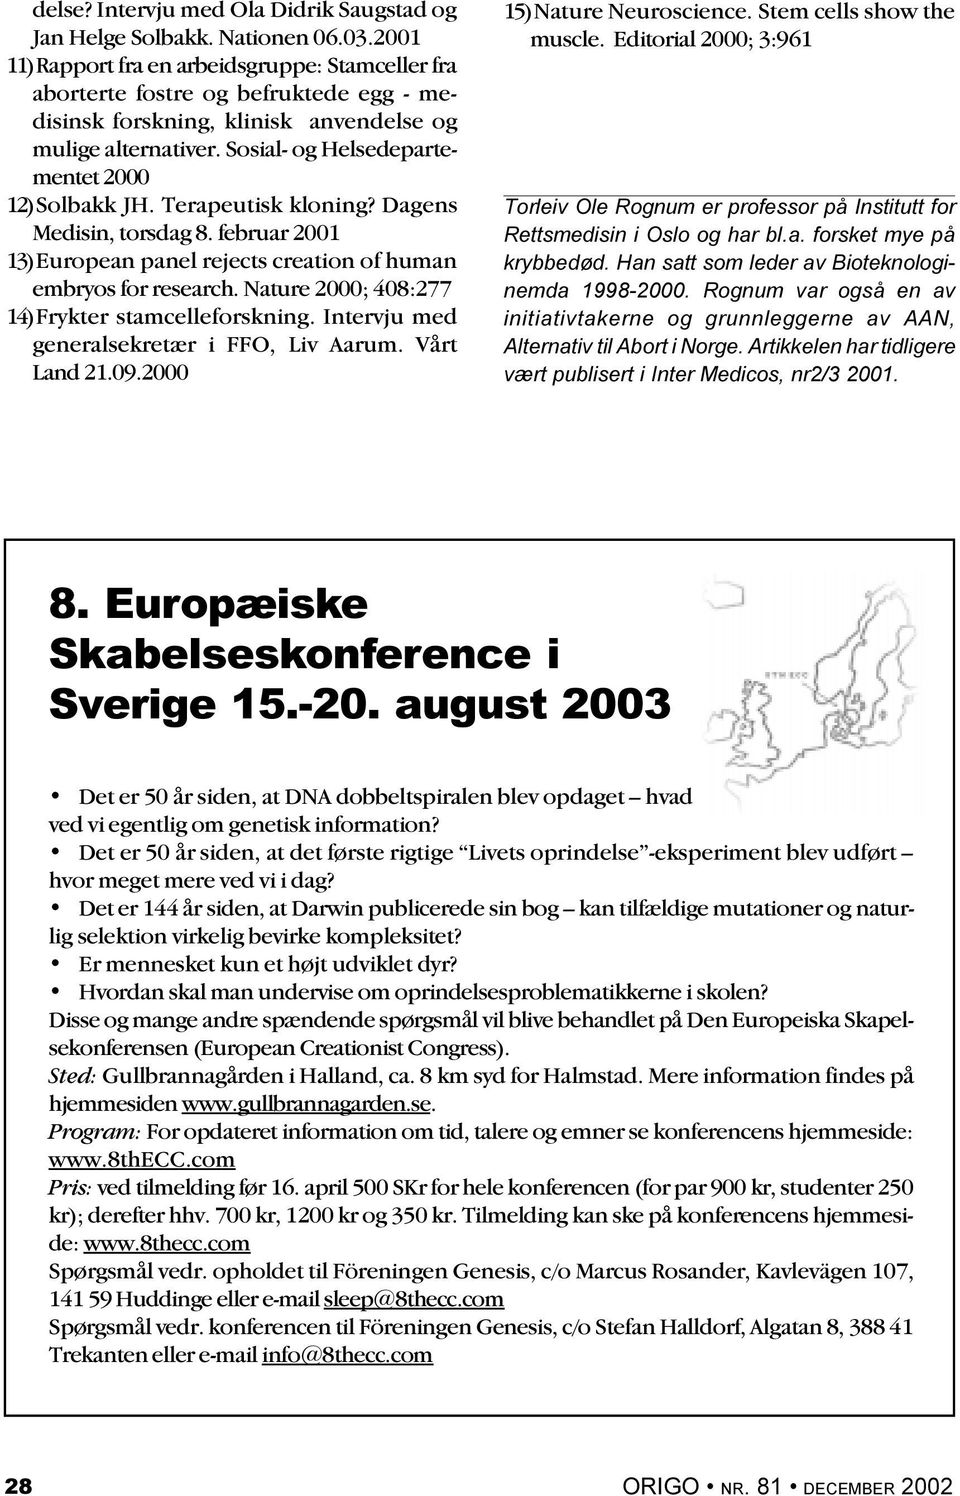 Sosial- og Helsedepartementet 2000 12)Solbakk JH. Terapeutisk kloning? Dagens Medisin, torsdag 8. februar 2001 13)European panel rejects creation of human embryos for research.